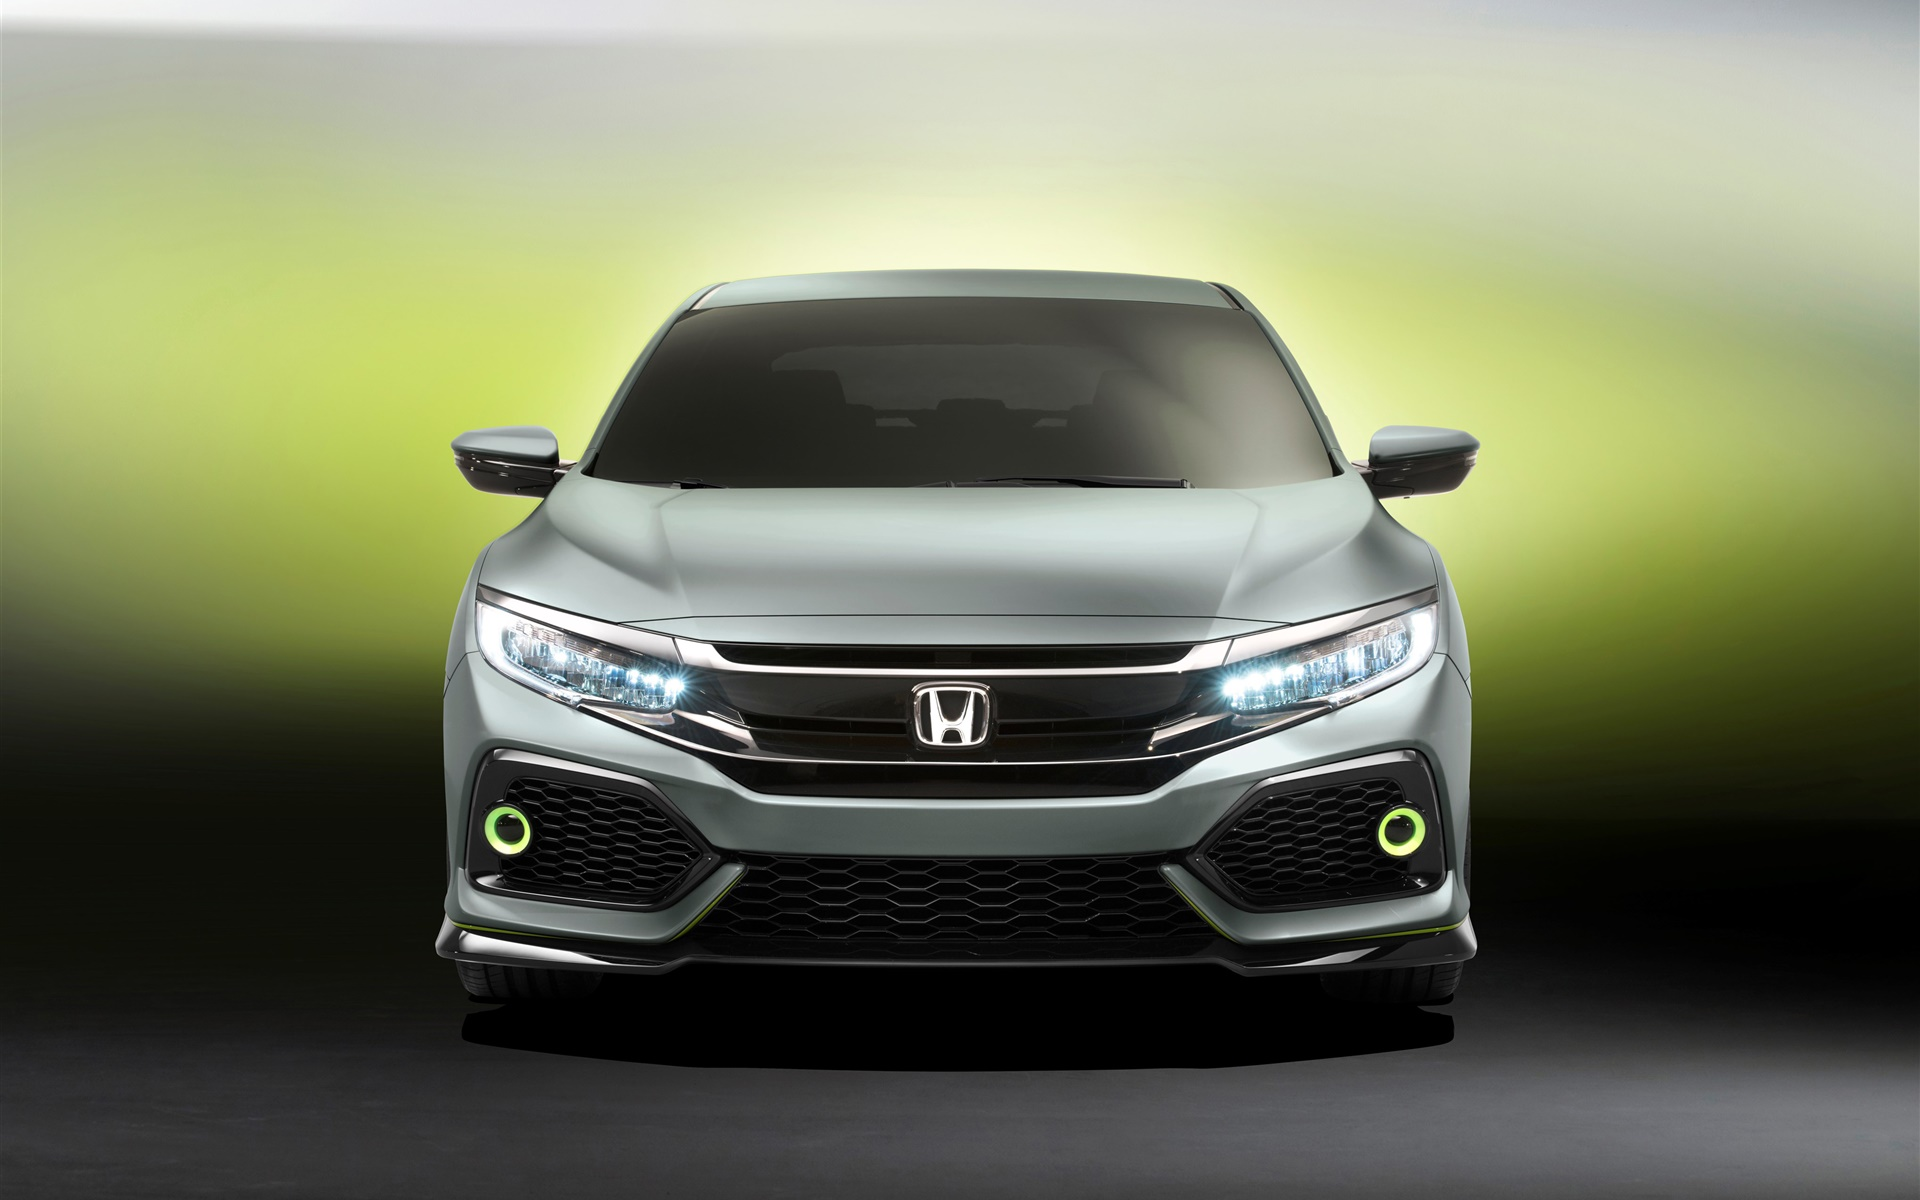 Honda Civic Hatchback car front view 1920x1200 wallpaper